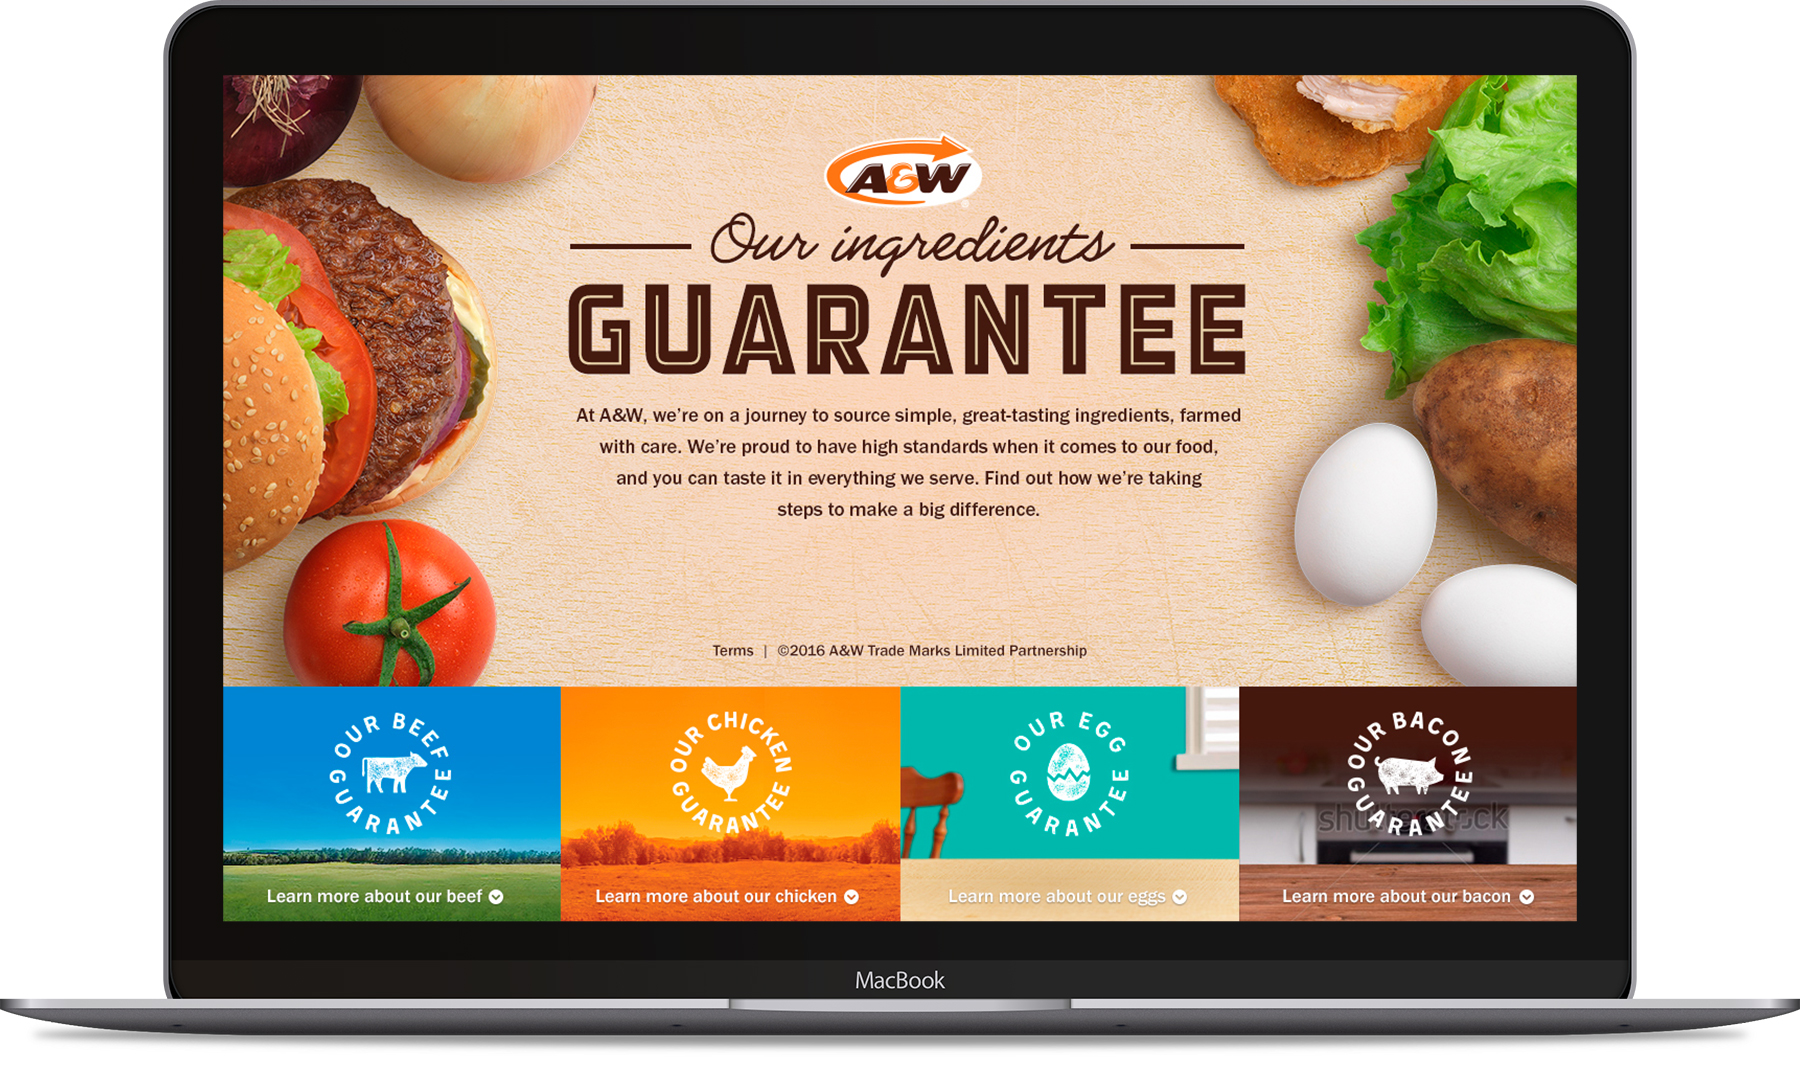 Desktop, A&W's Better Ingredients—Homepage